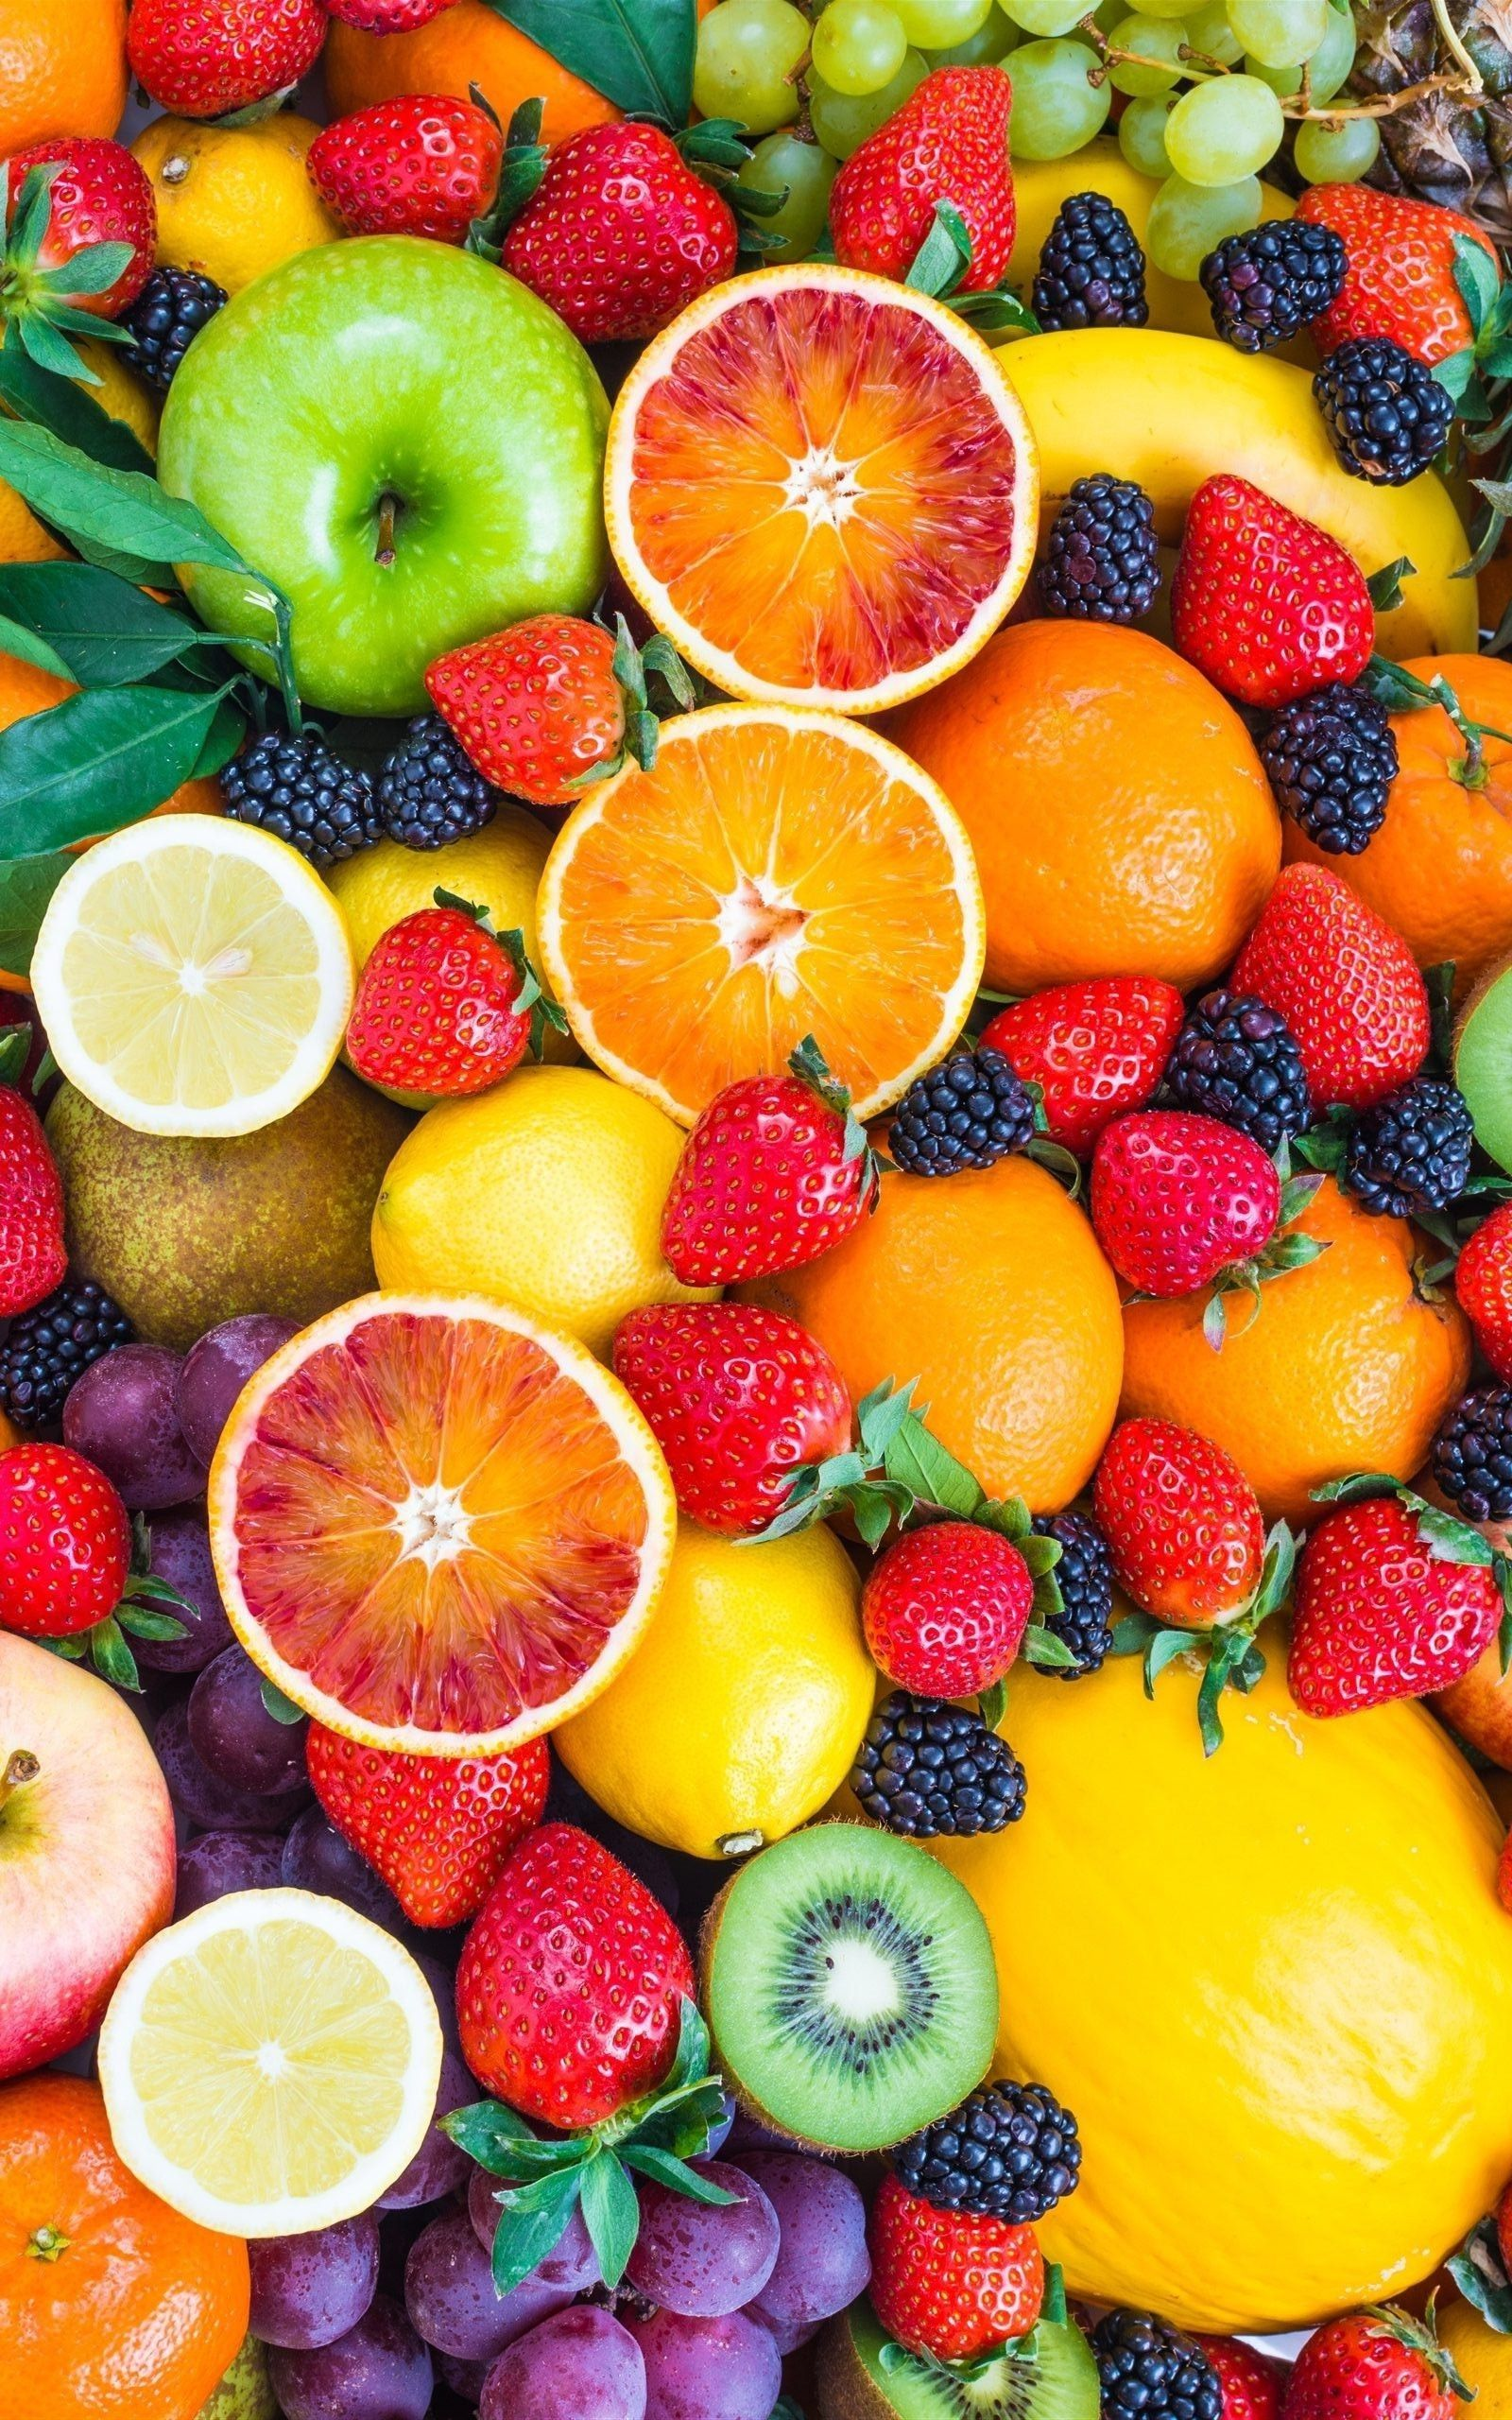 Fruits Wallpapers   Top Fruits Backgrounds   WallpaperAccess 1600x2560